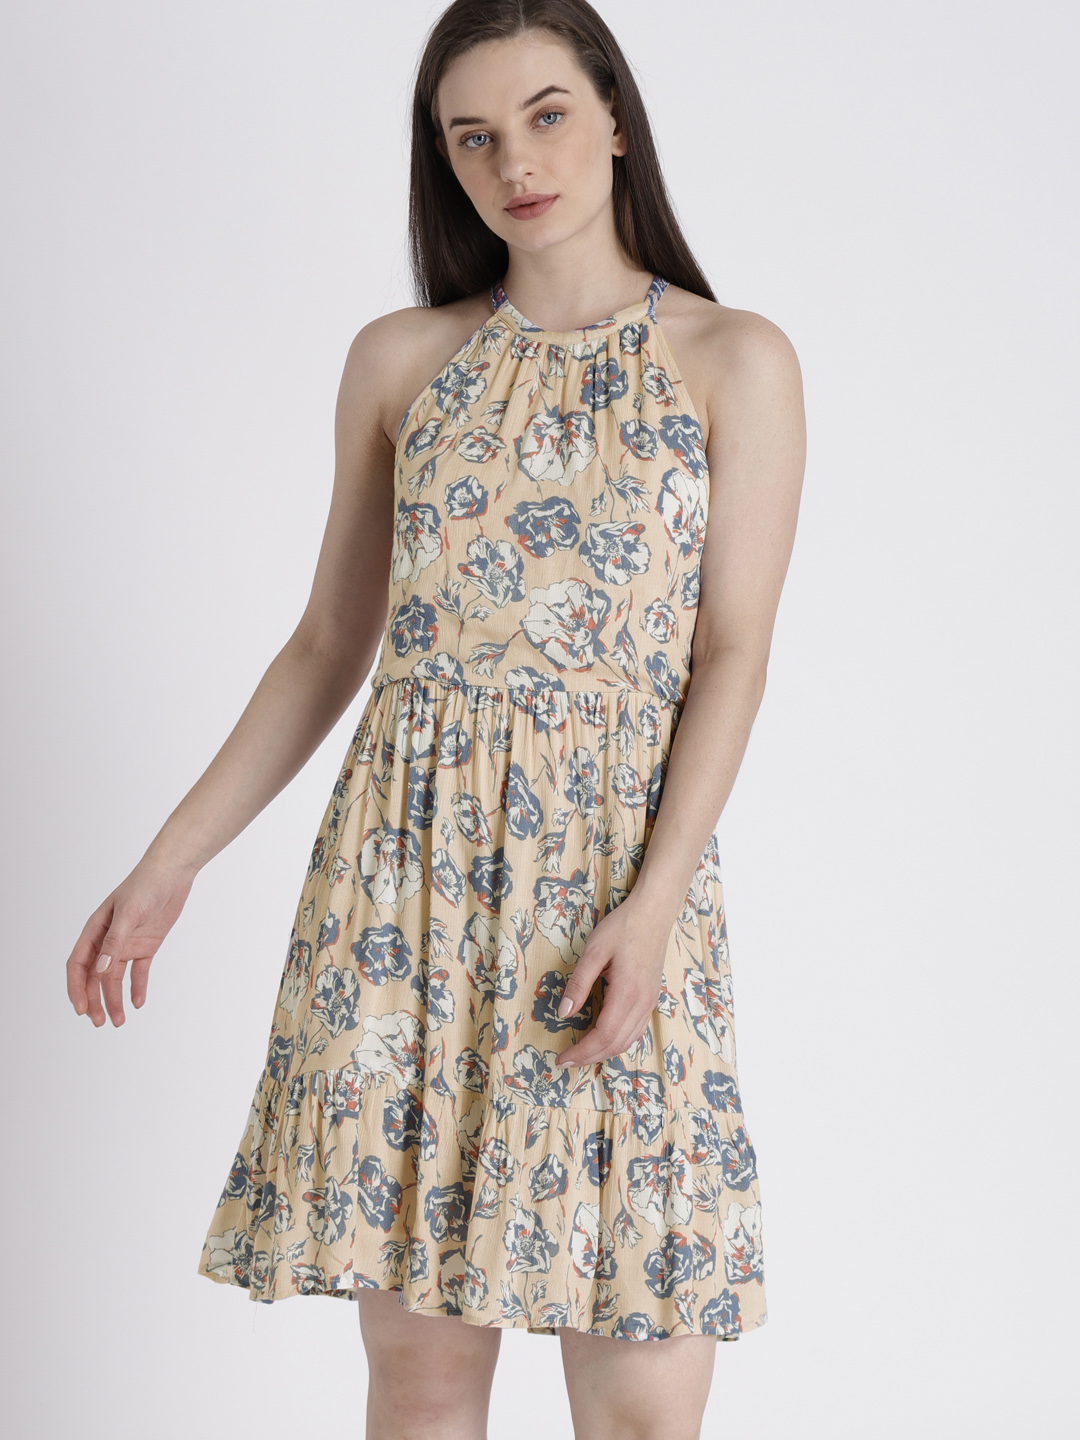 10-Dresses-For-Pear-Shaped-Body